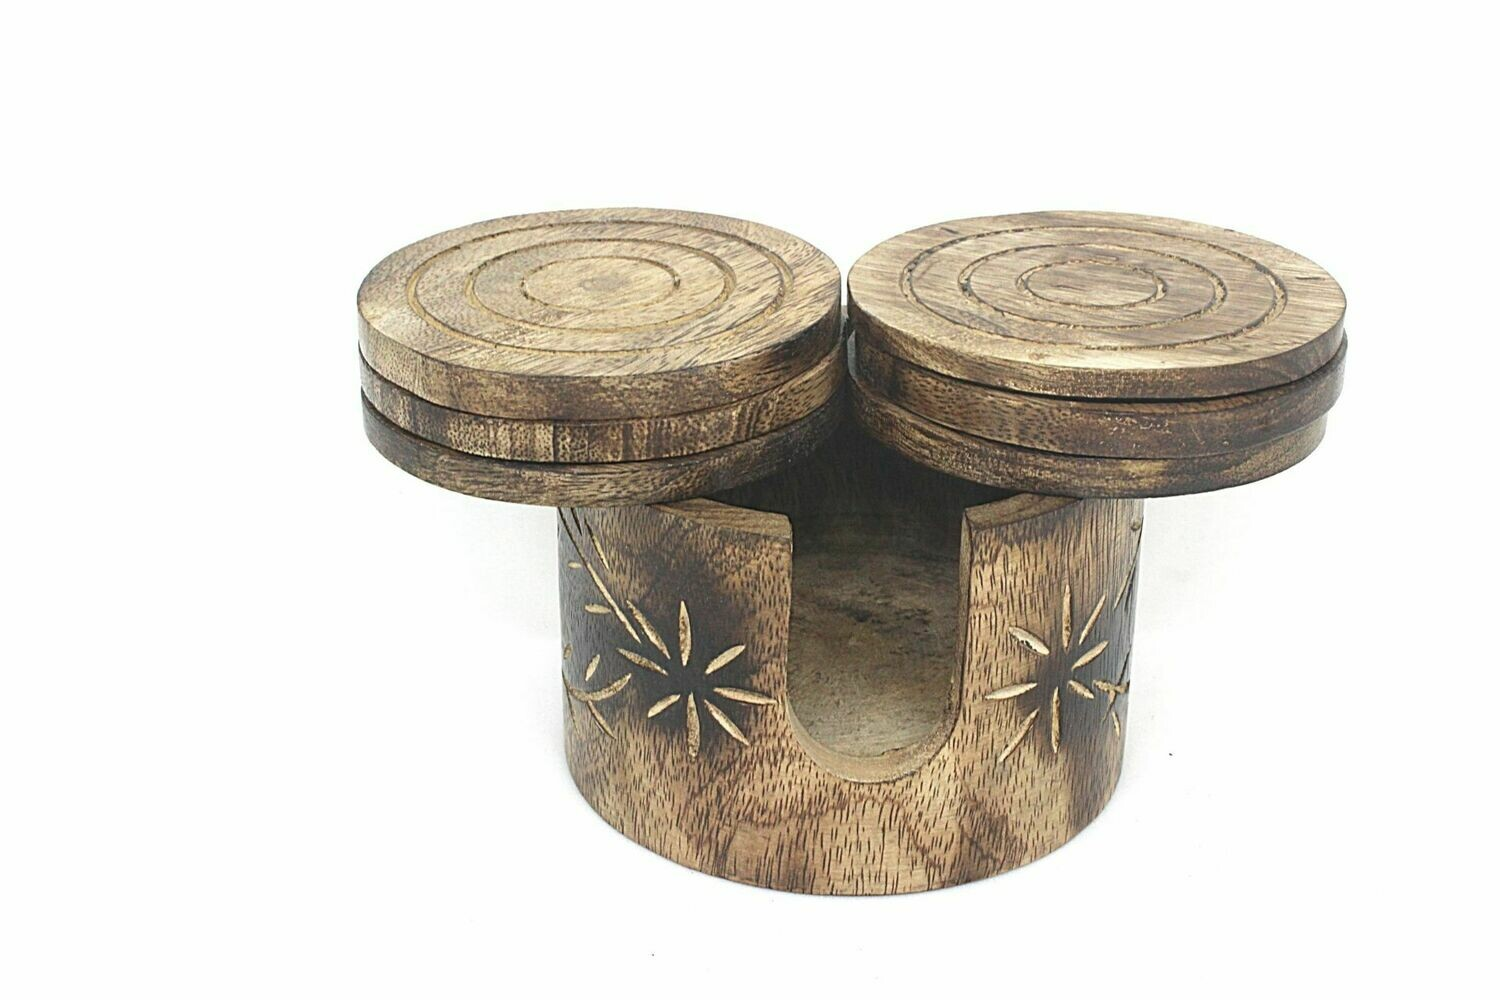 Hand Crafted Wooden Coasters || Tea || Coffee Mugs || Beer Cans || Bar Tumblers || Water Glasses